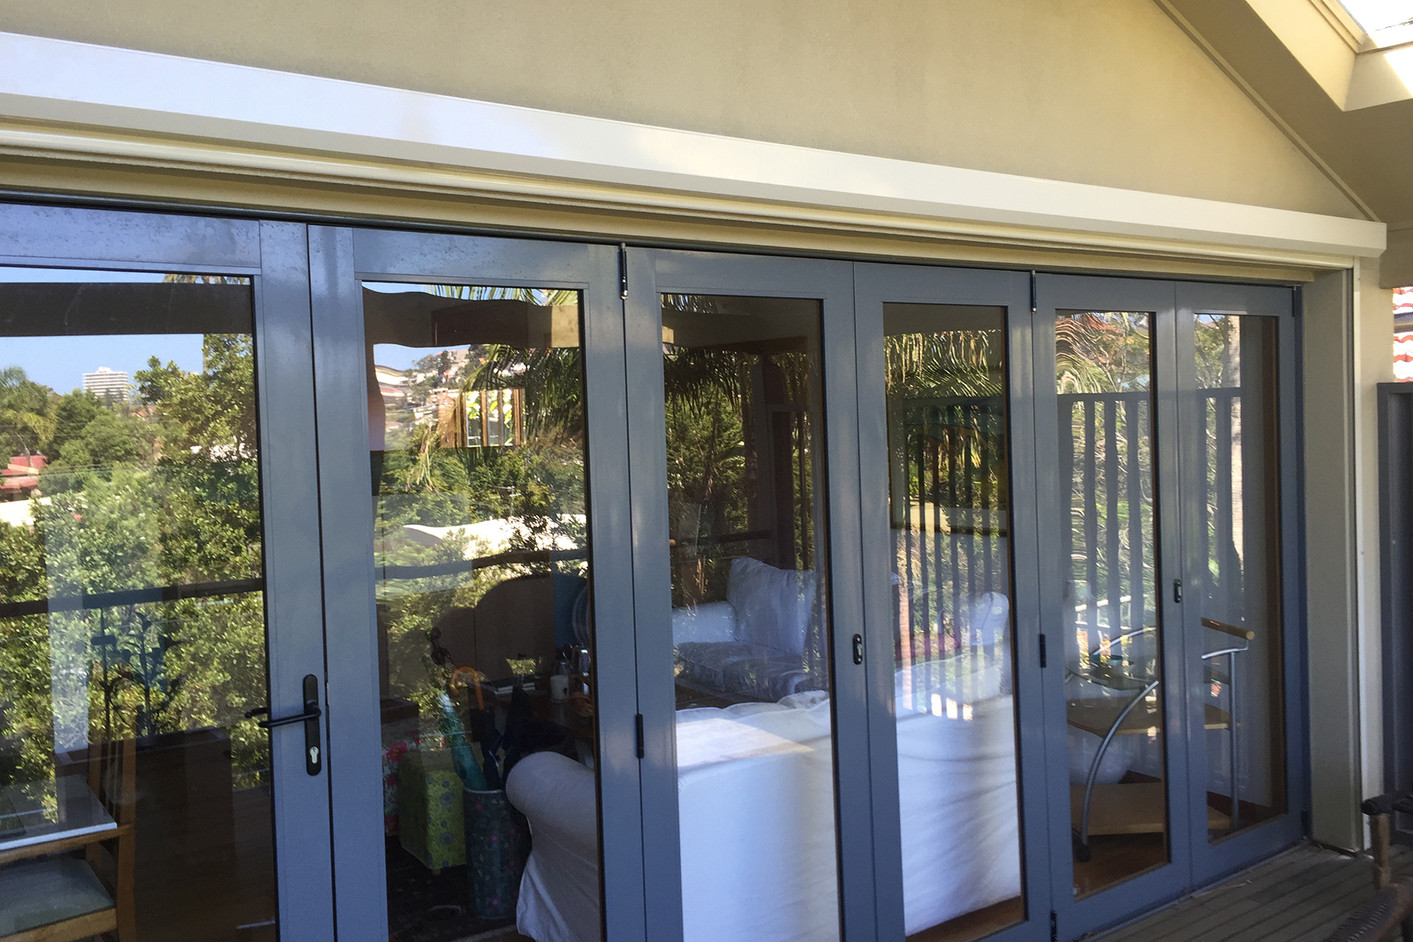 Vertiscreen with screen fabric | Zipscreen | Motorised awning | Sun protection